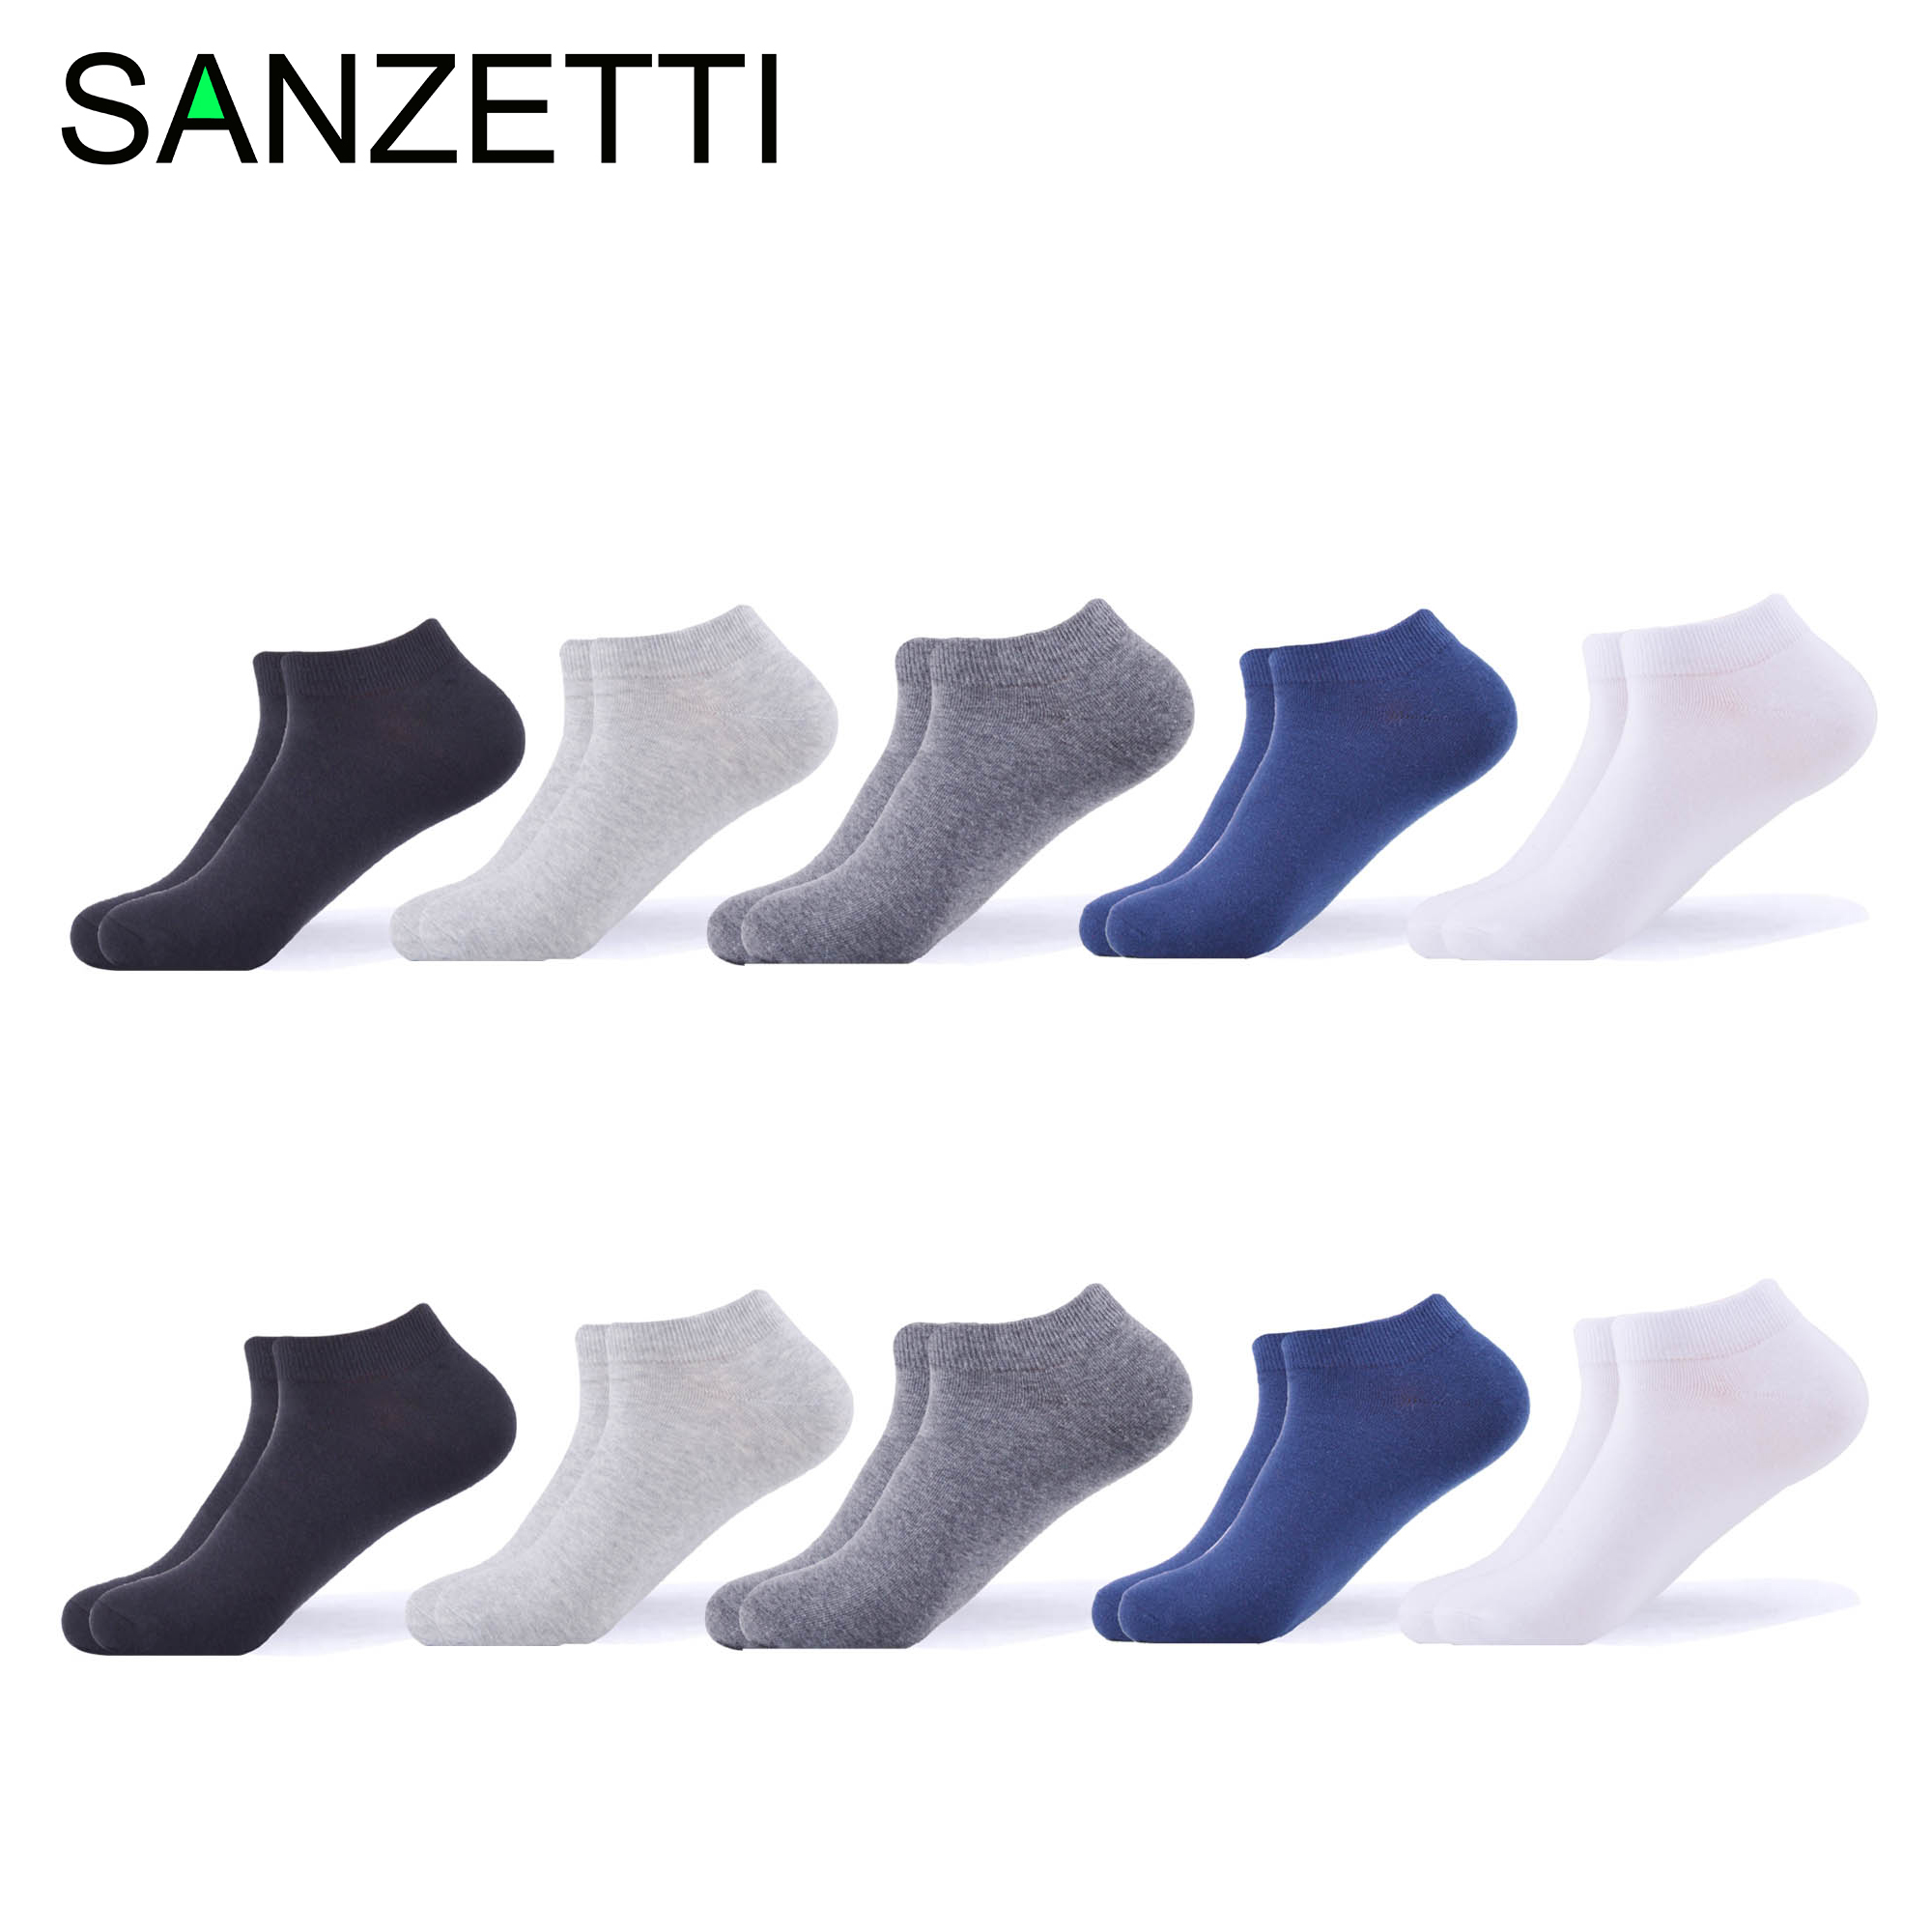 SANZETTI Brand Comfortable Men's Casual Combed Cotton Classic Business Solid Socks Party Gift Breathable Soft Dress Ankle Socks